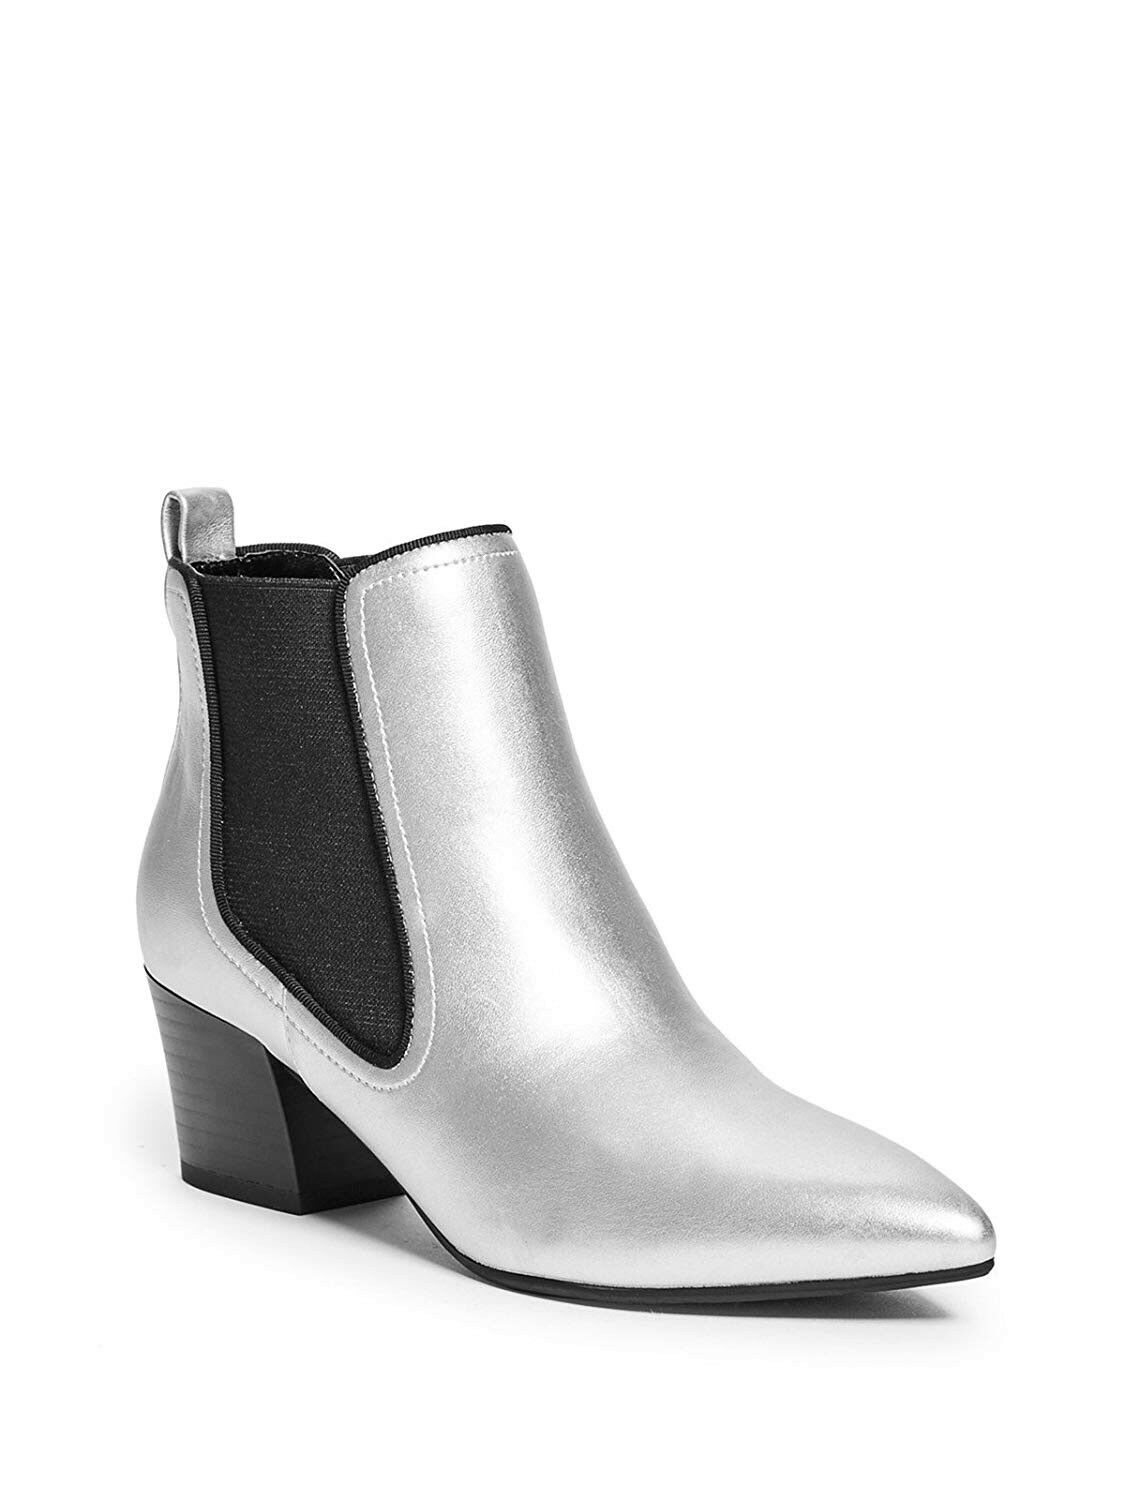 Guess Women's Stanford Silver Metallic Faux Leather Heeled Booties Size 6.5